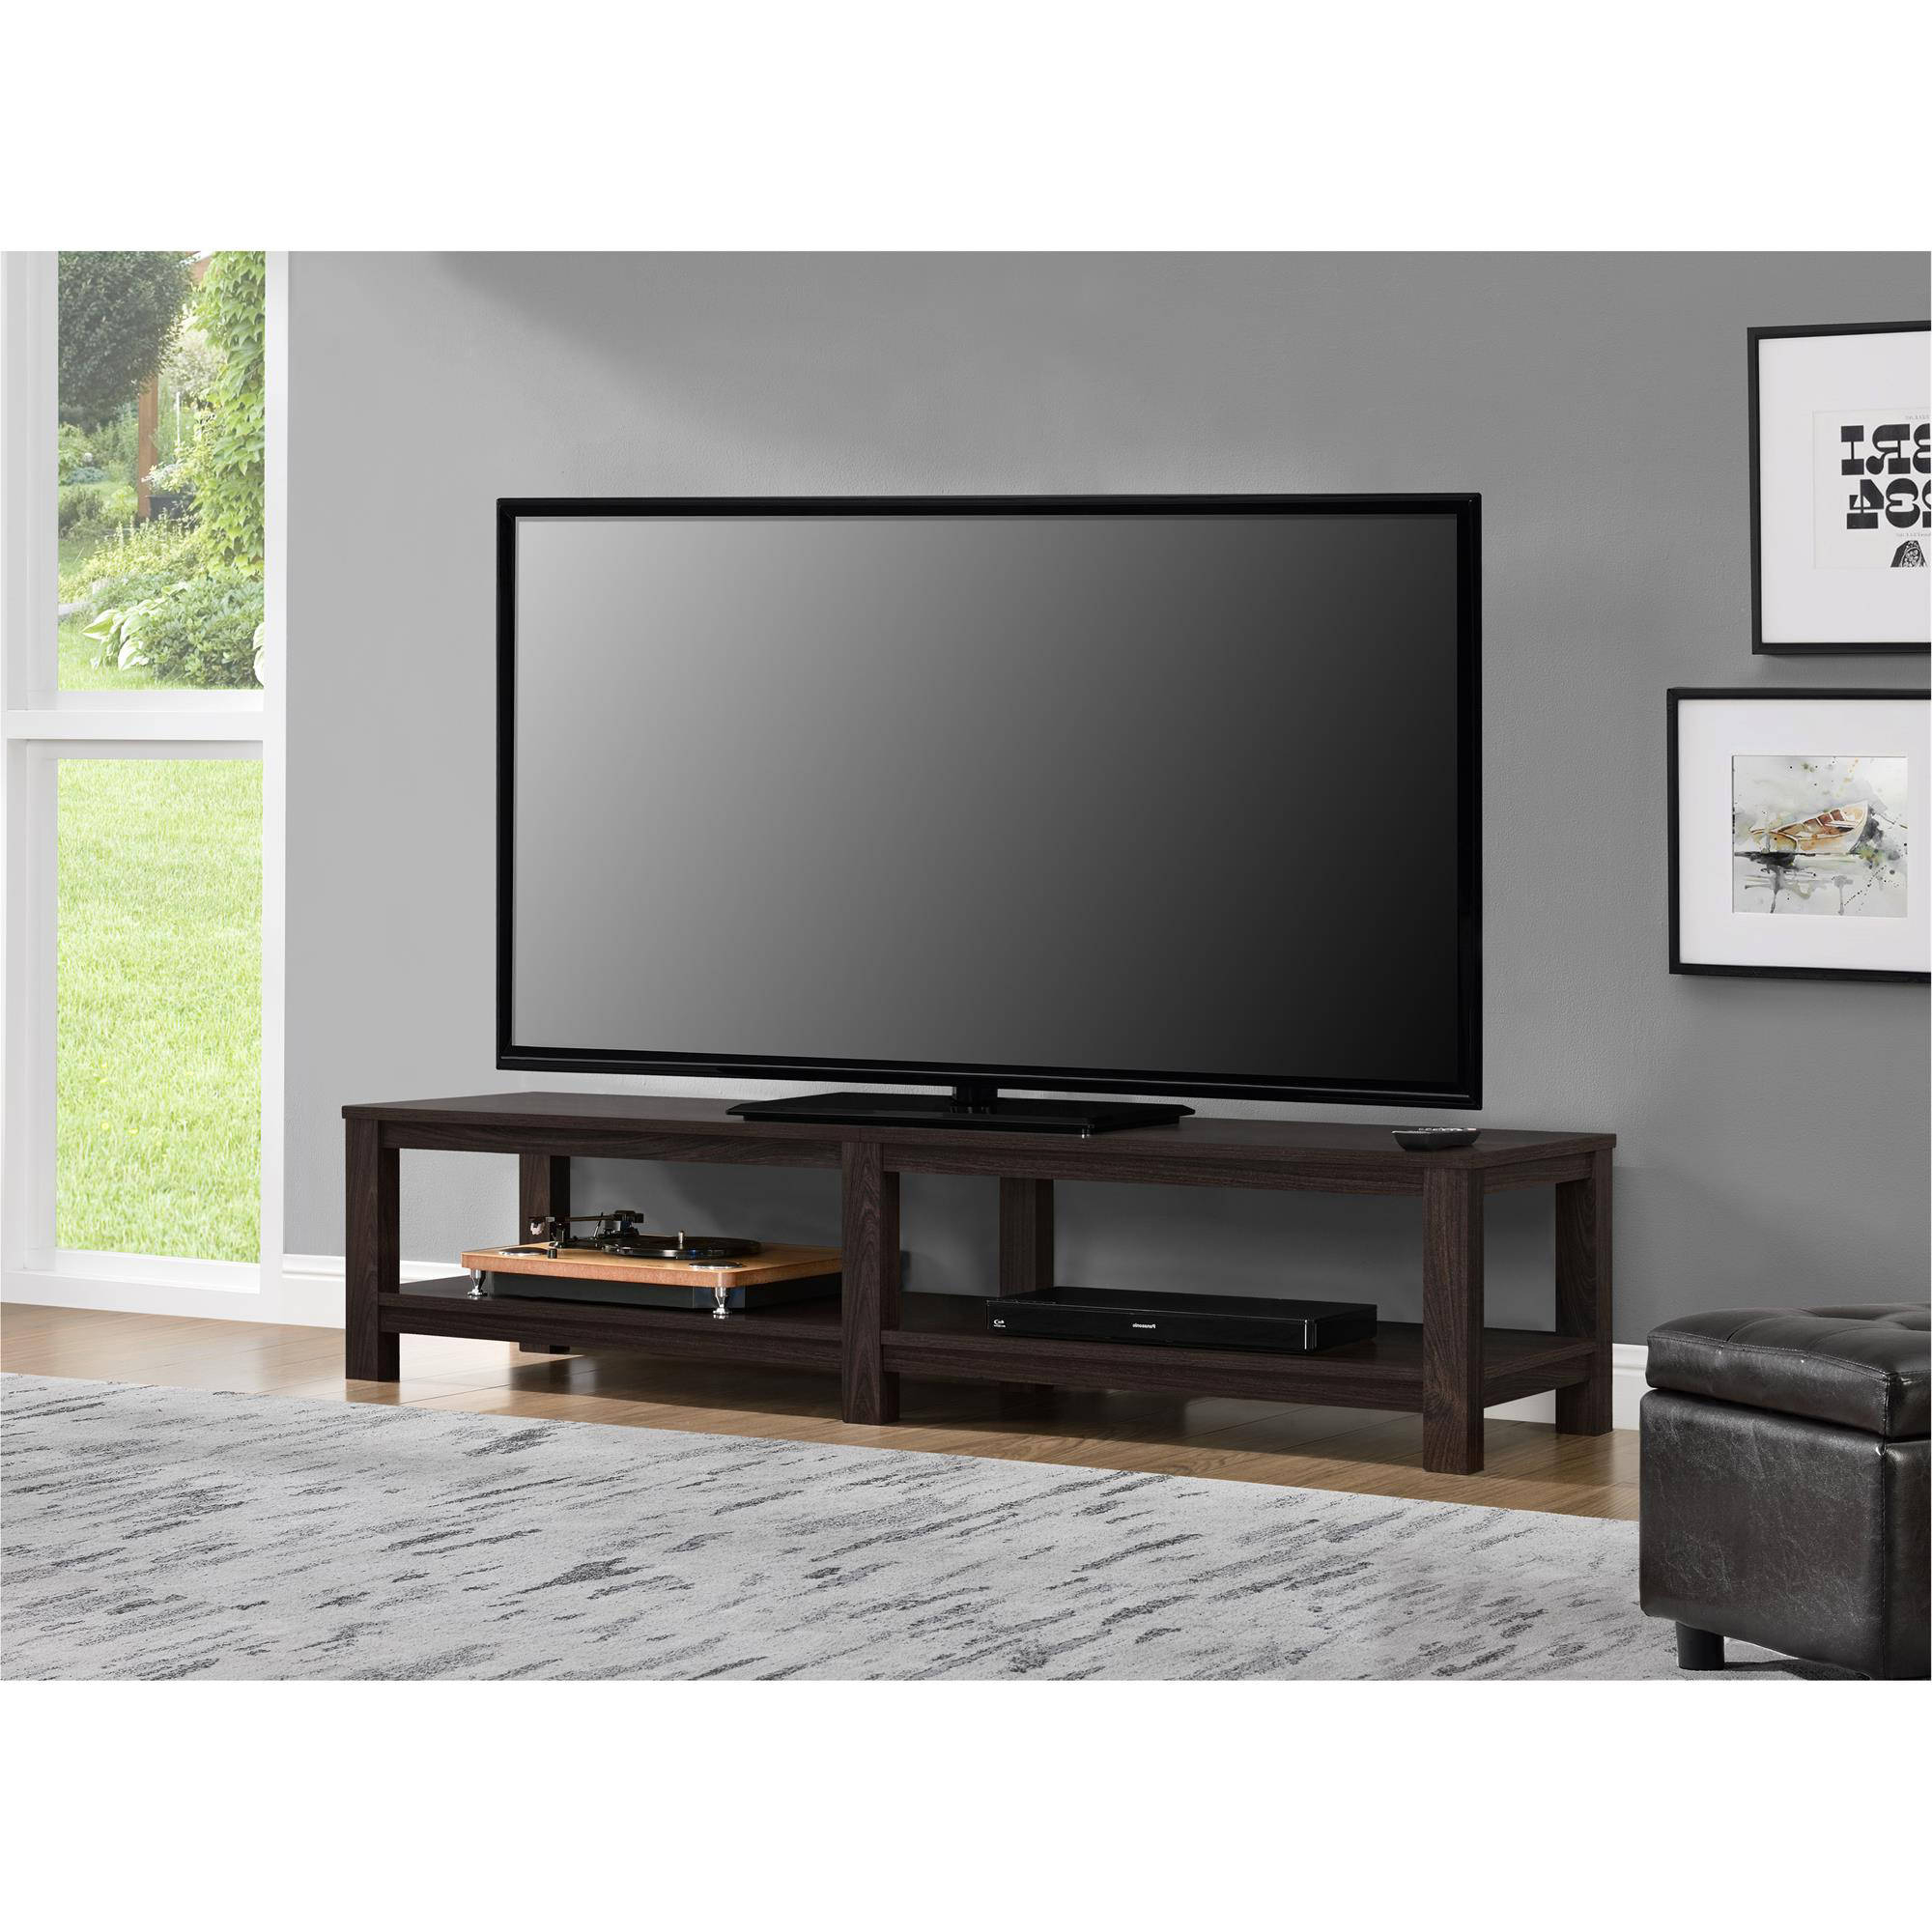 "Mainstays Parsons Tv Stand For Tvs Up To 65"", Multiple Colors Regarding Century Blue 60 Inch Tv Stands (Gallery 6 of 20)"